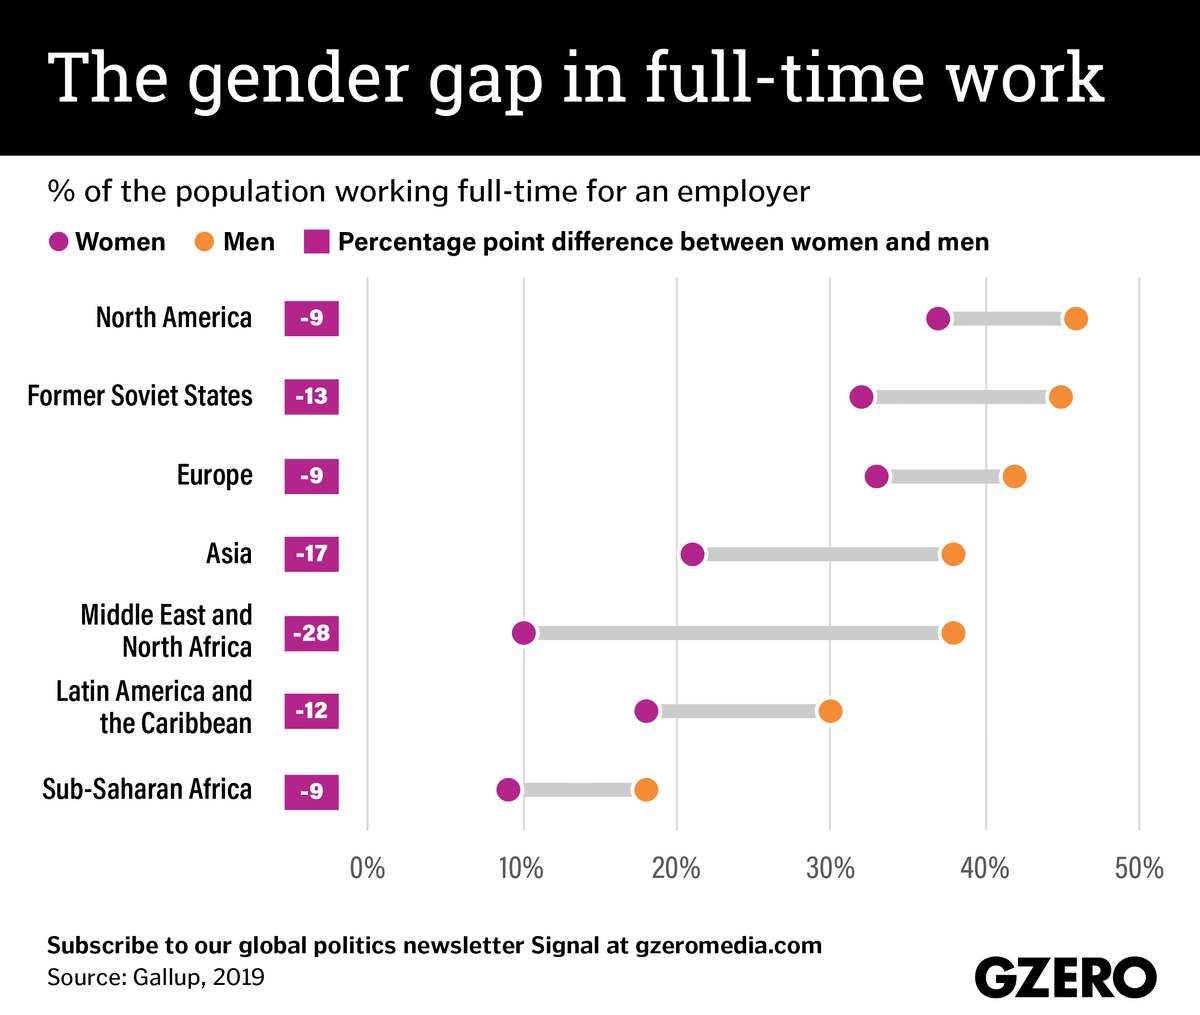 The Graphic Truth: the gender gap in full-time work